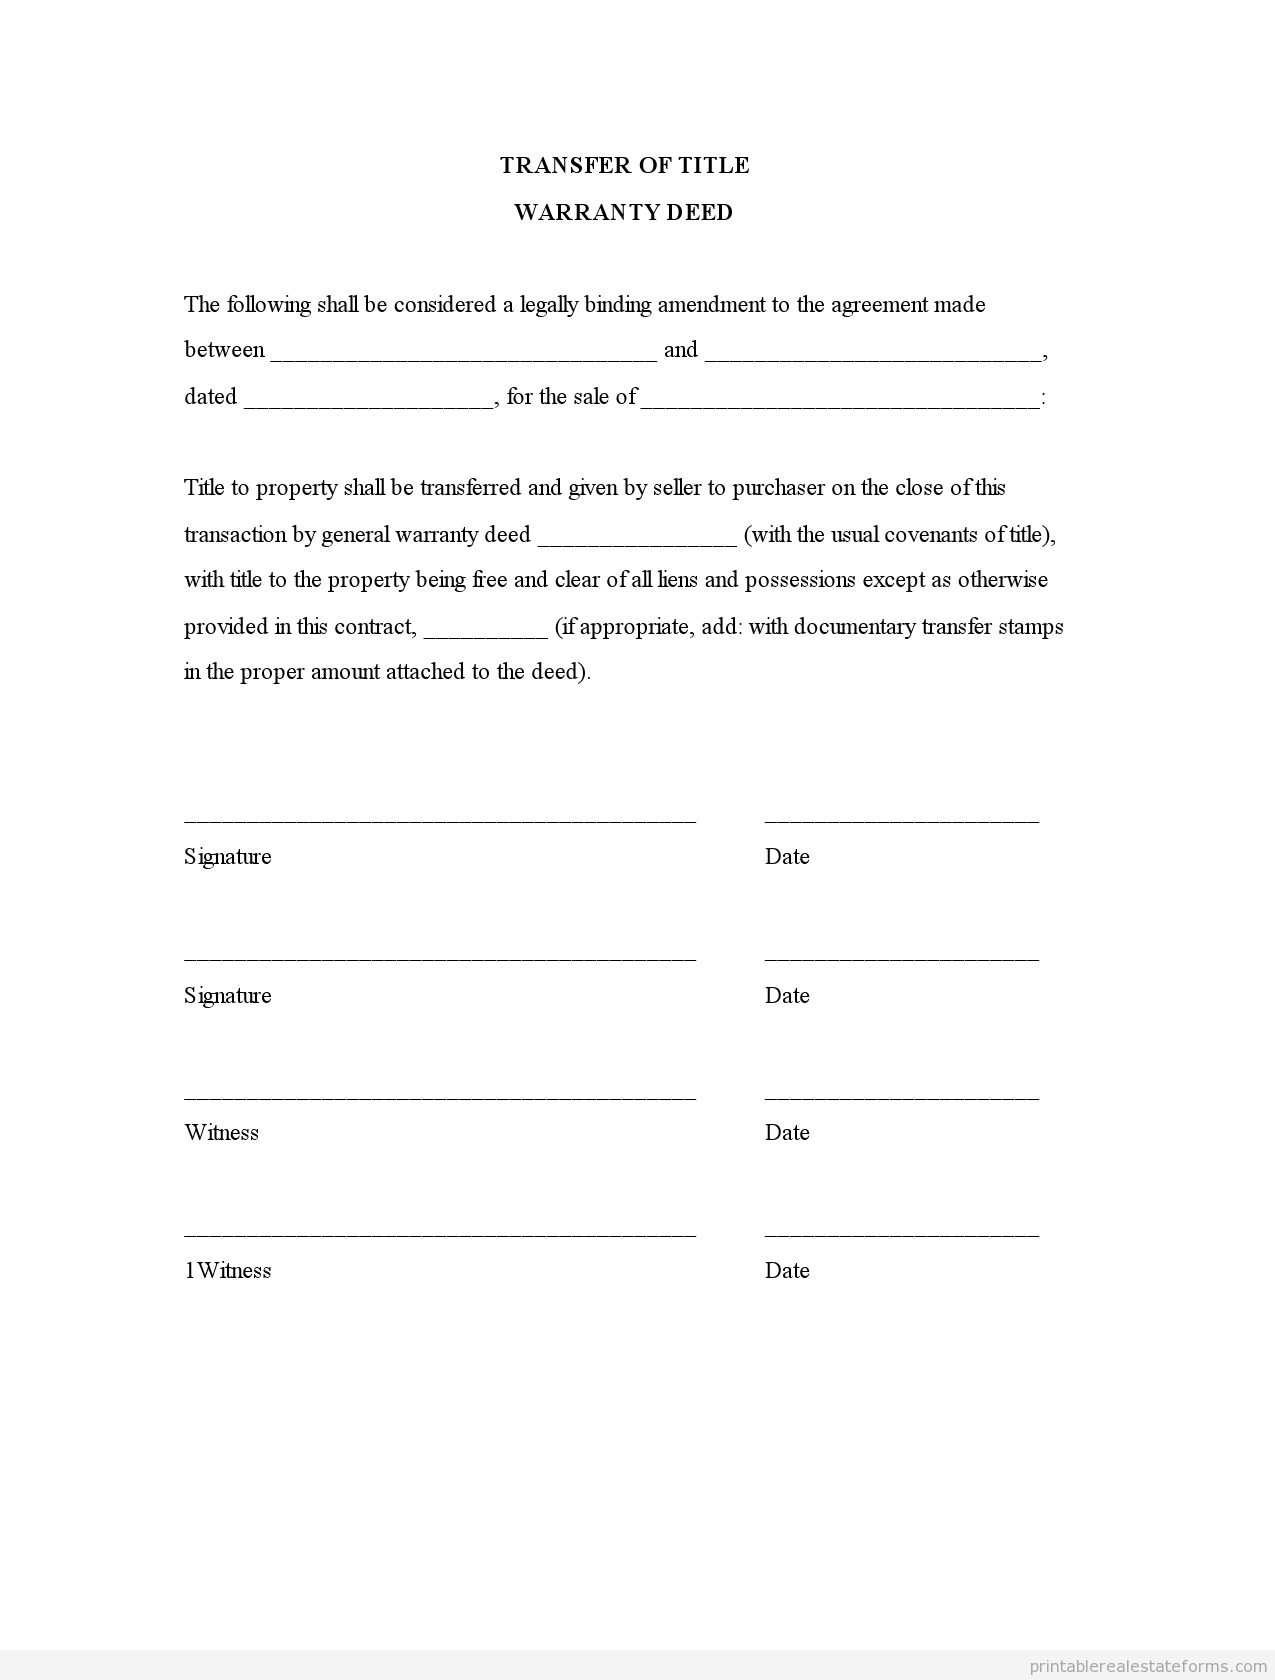 Printable Transfer Of Title Warranty Deed Template 2015